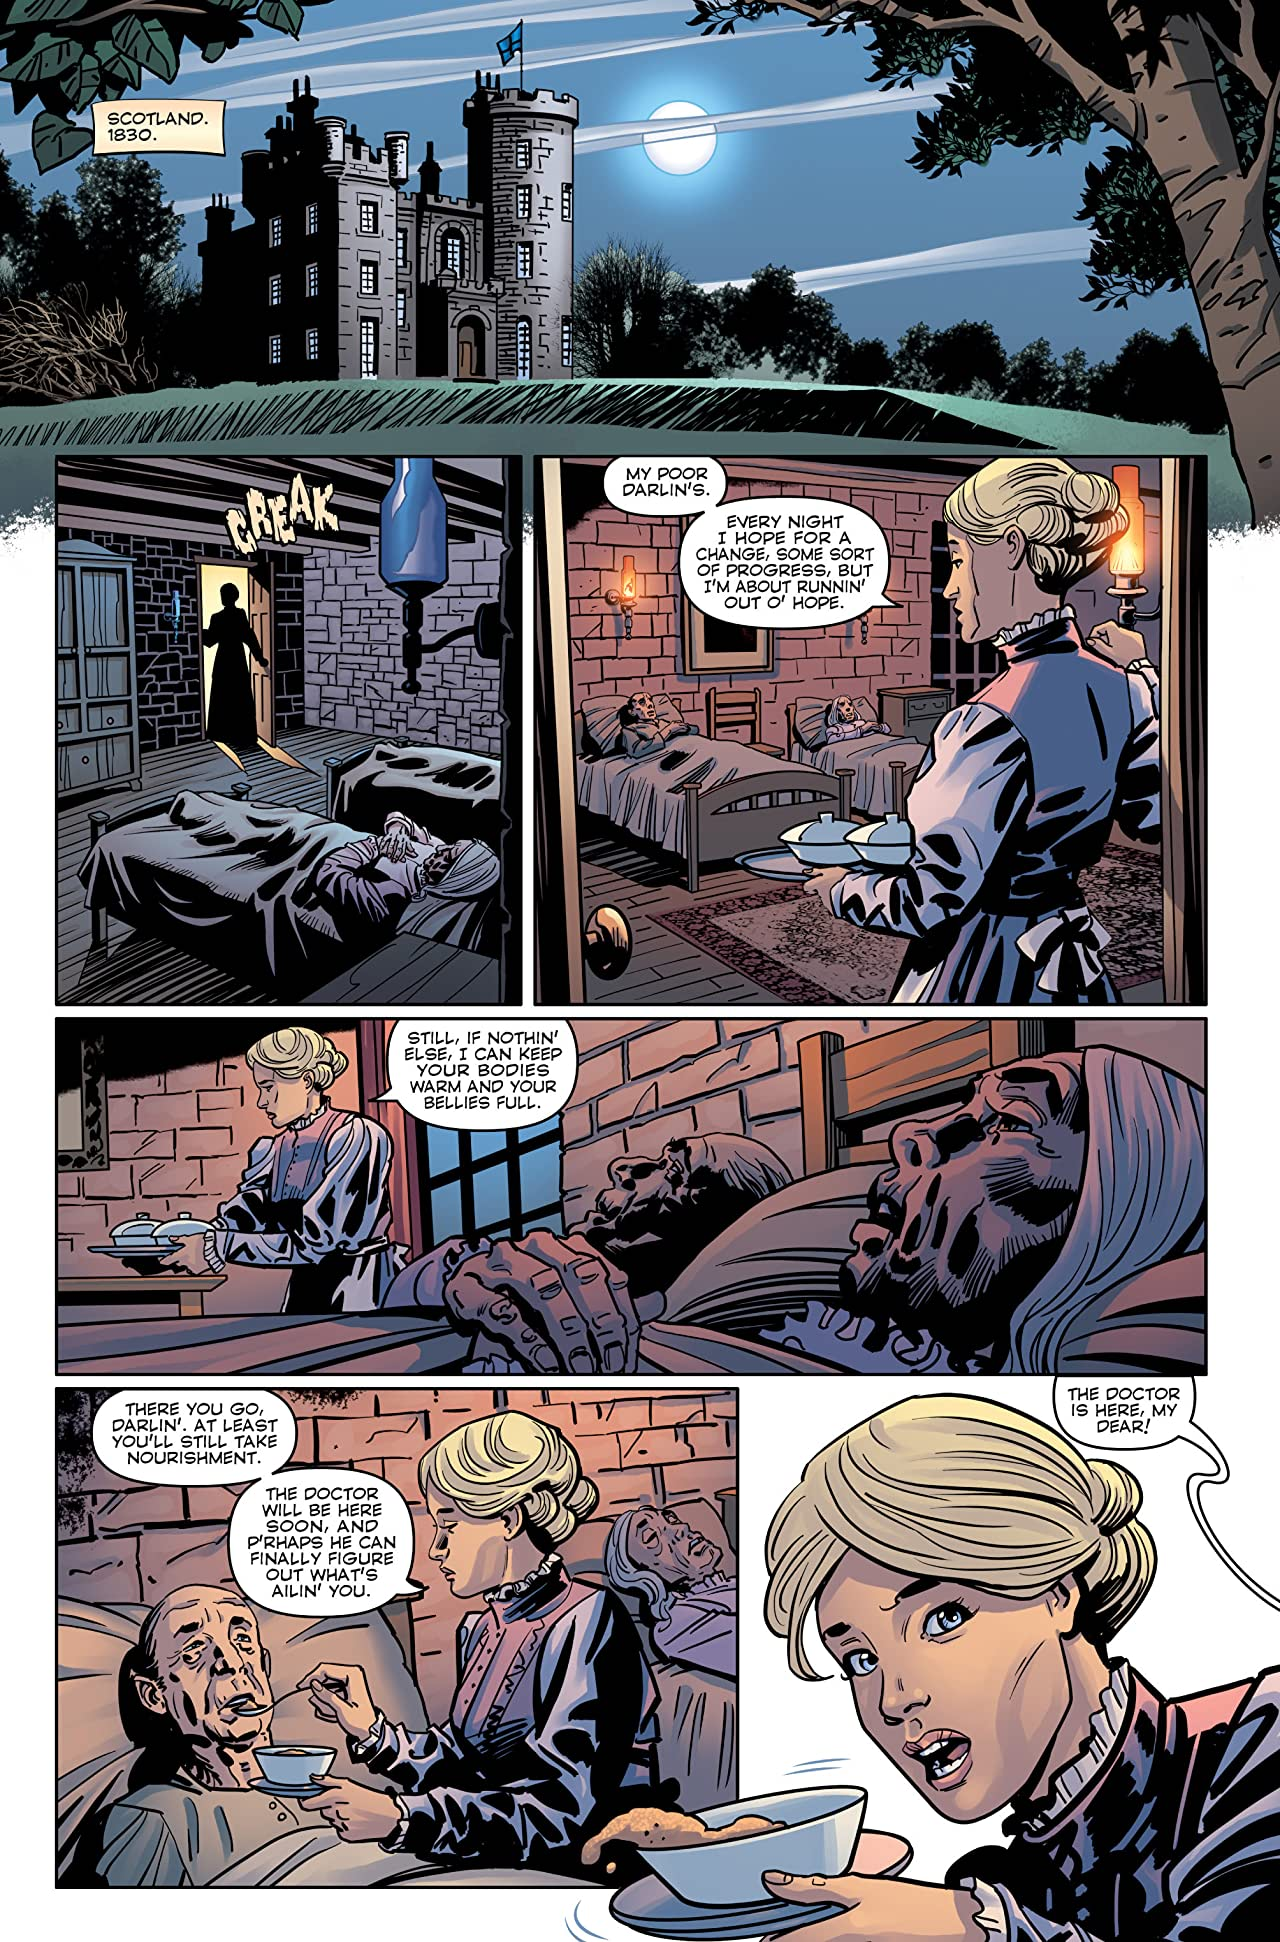 Doctor Who: Prisoners of Time #7